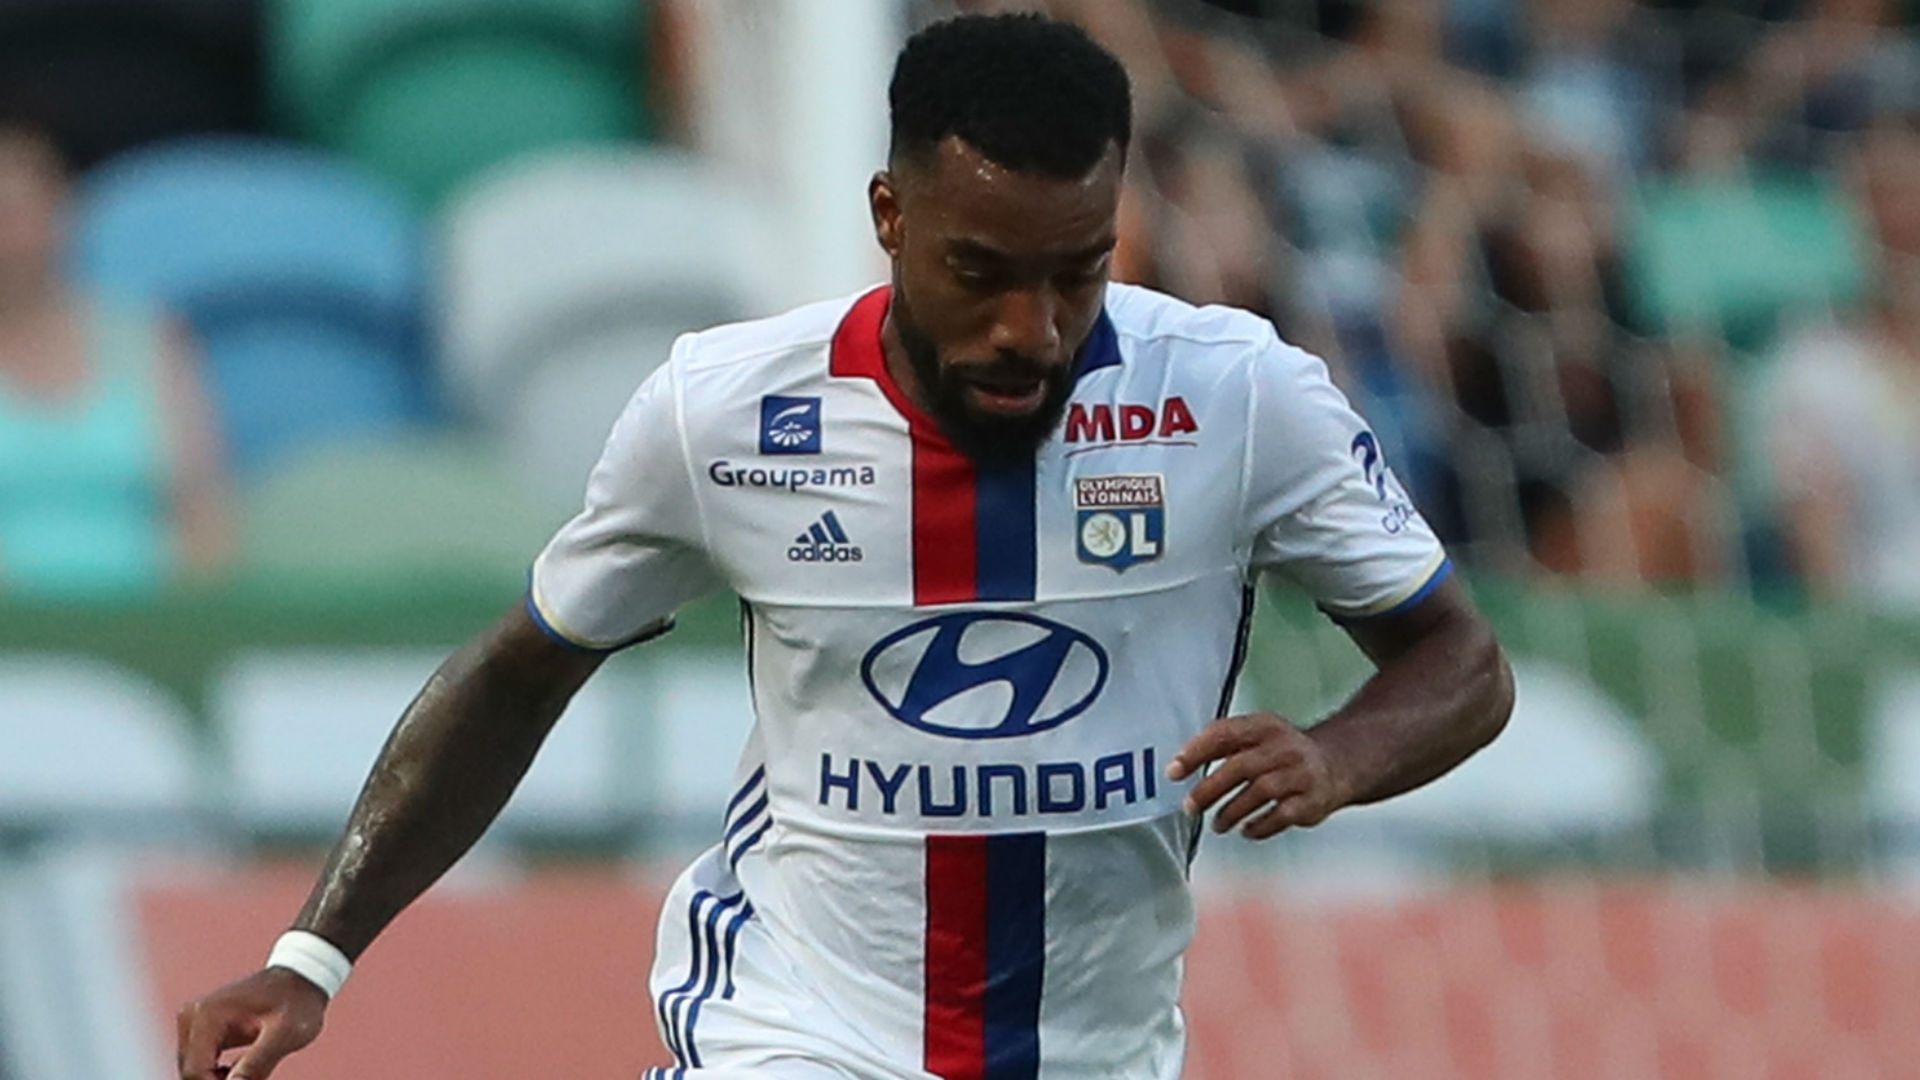 It now seems that Wenger has made up his mind and will let Lyon name their price for Lacazette in an attempt to bring back the goal-scoring flair of the days when Thierry Henry wore the Arsenal jersey.